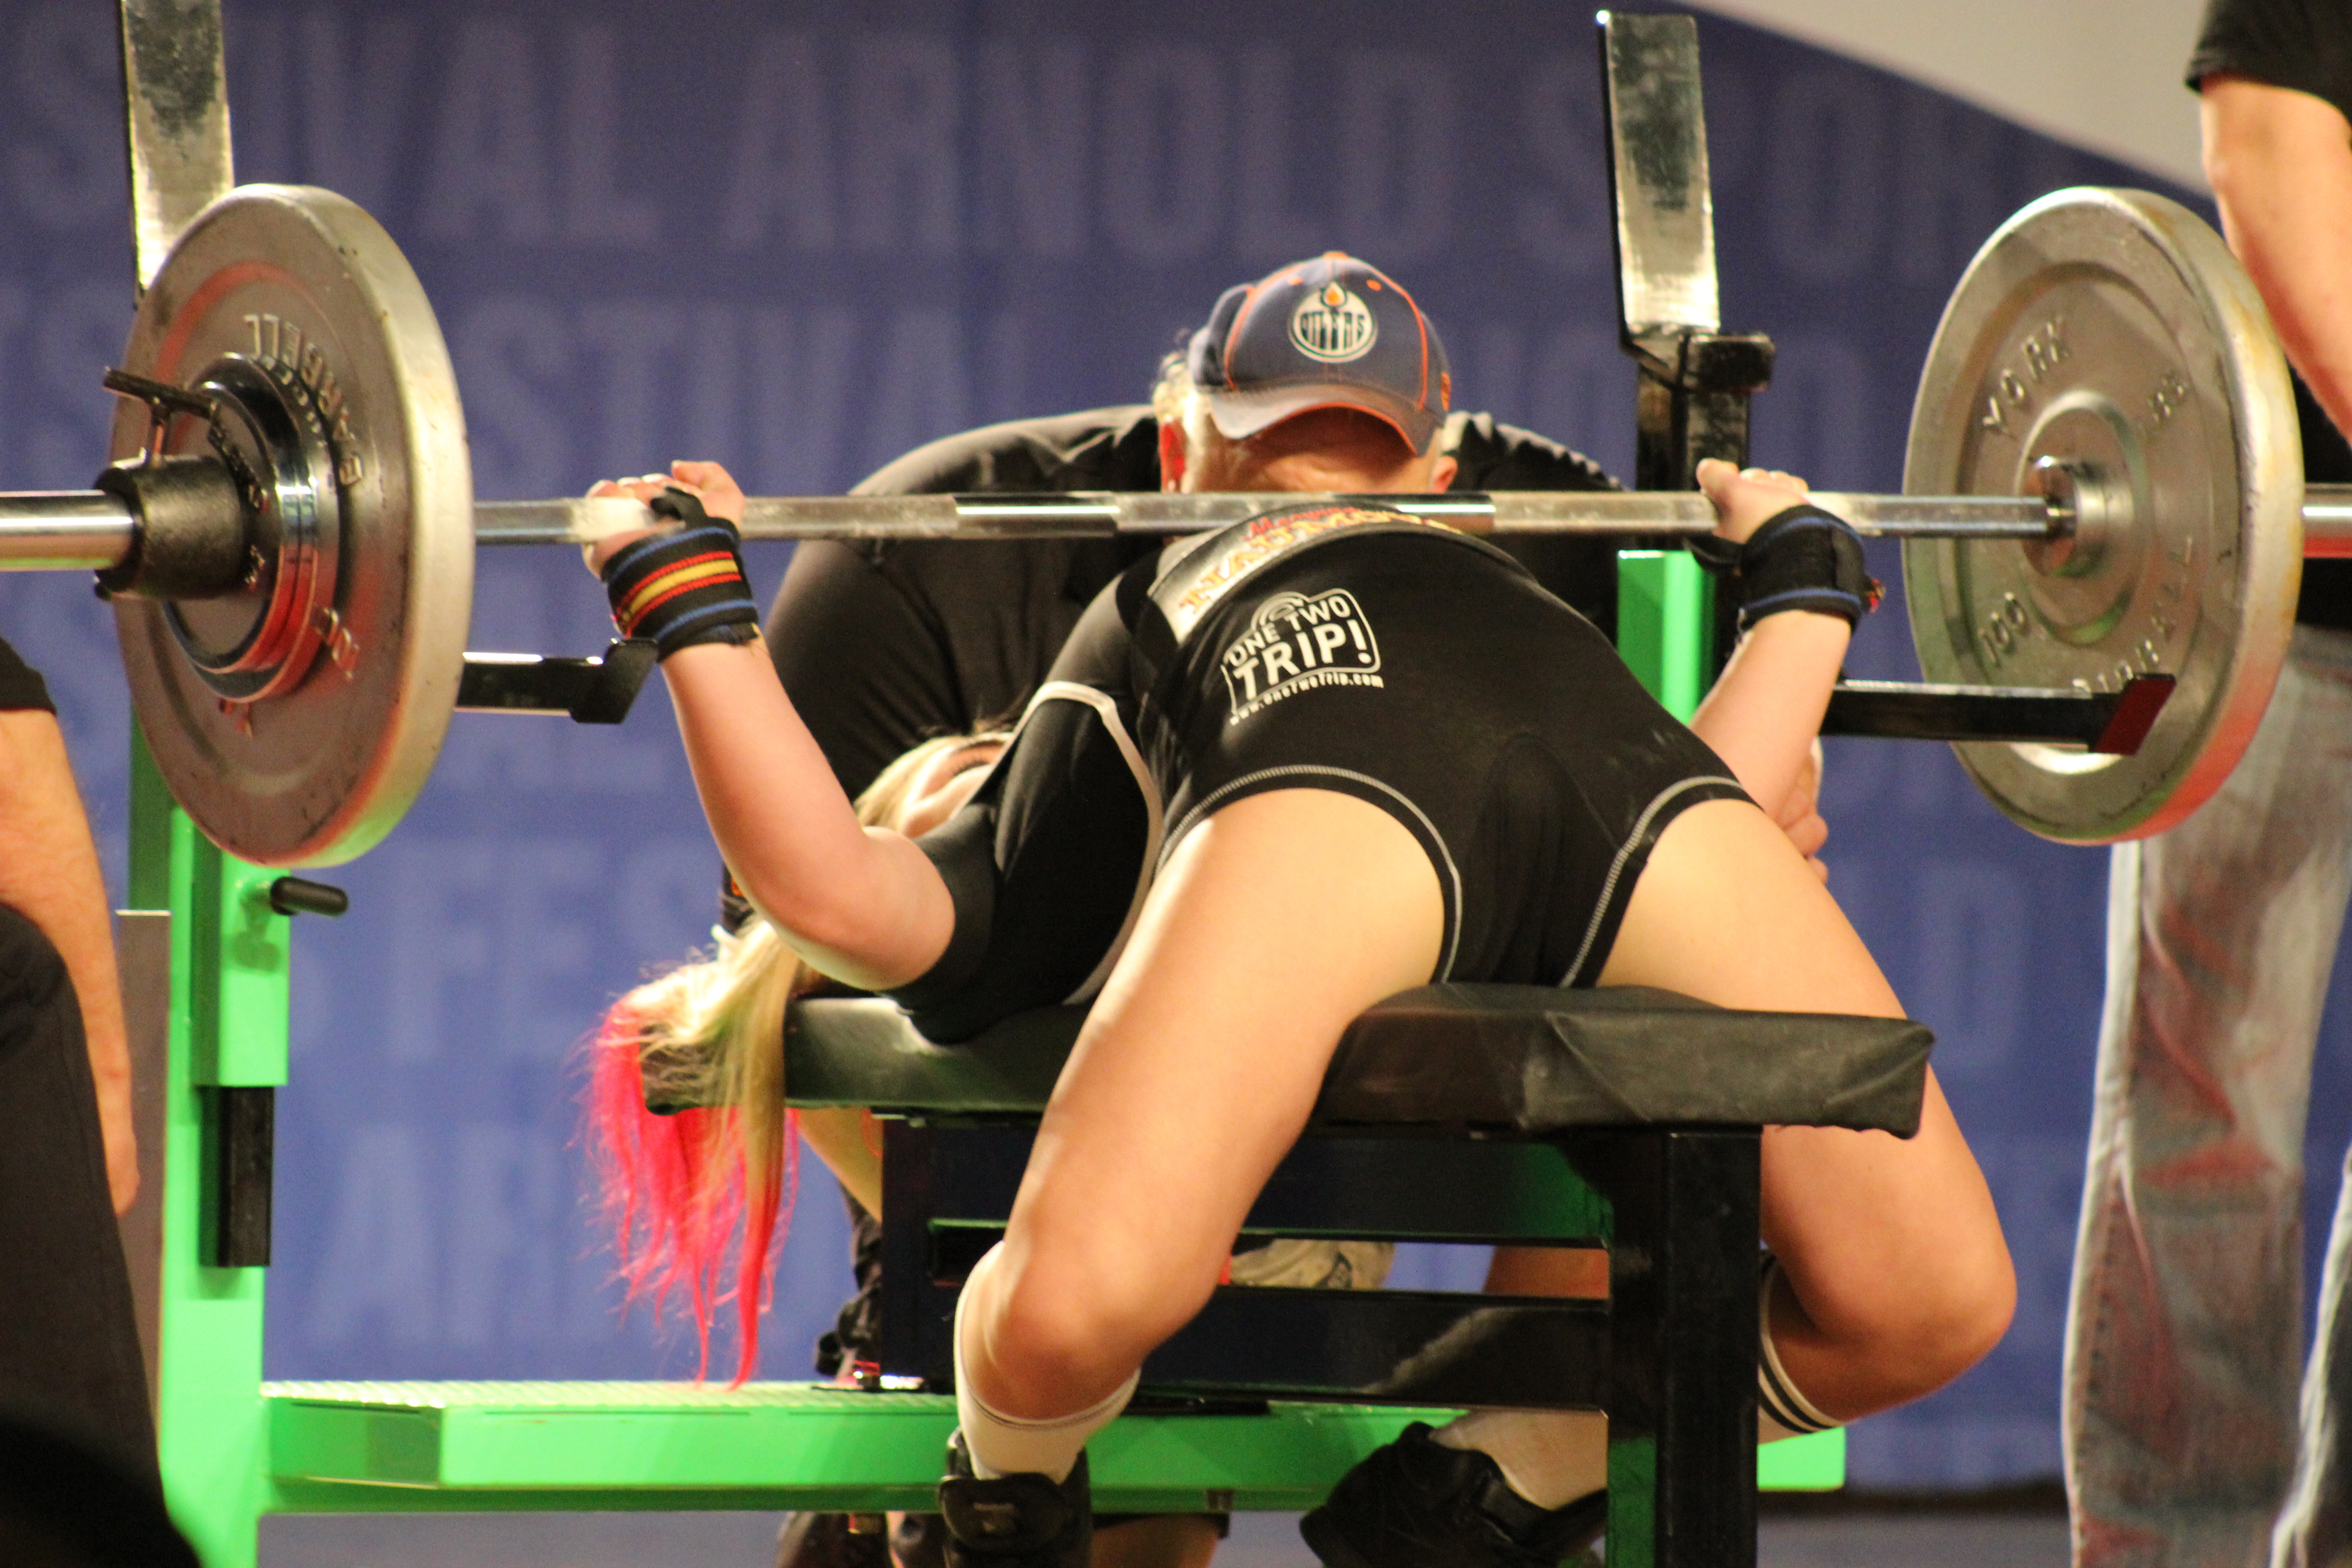 14 Year Old Girl Bench Presses 290lbs